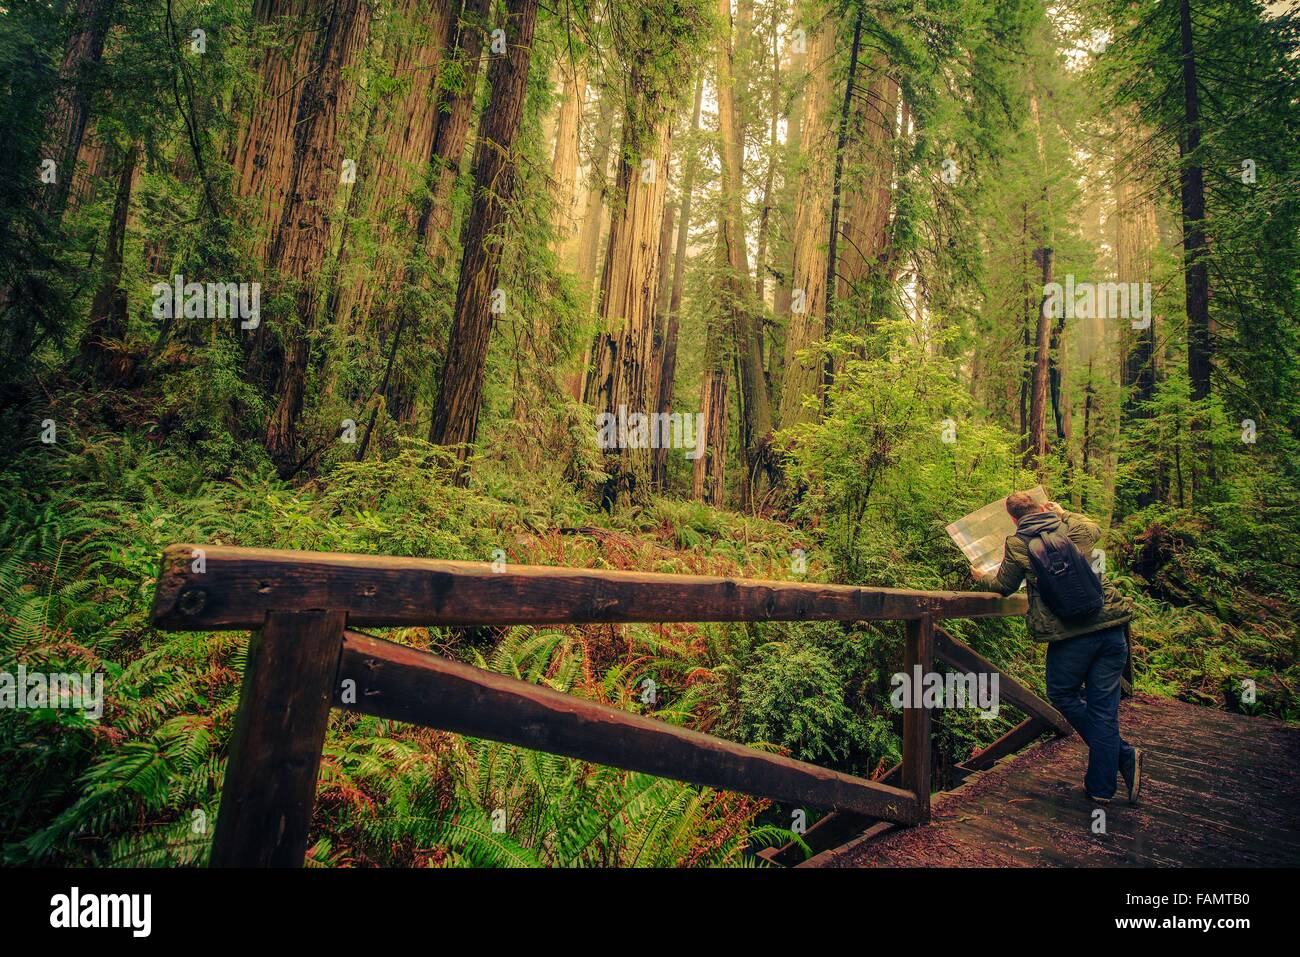 Map Of California Redwoods.Hiker With Map On A Trail In The Redwood Forest National Park Stock